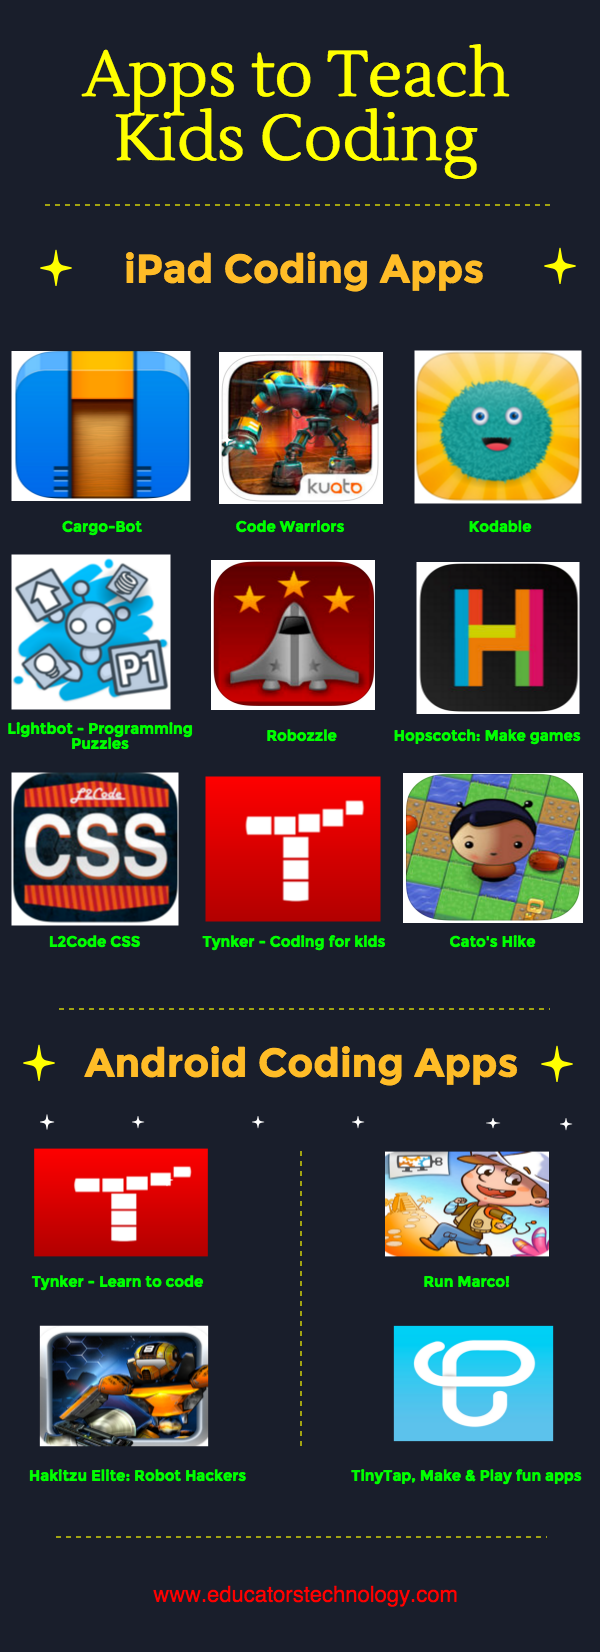 A Beautiful Visual Featuring Some of The Best Apps for